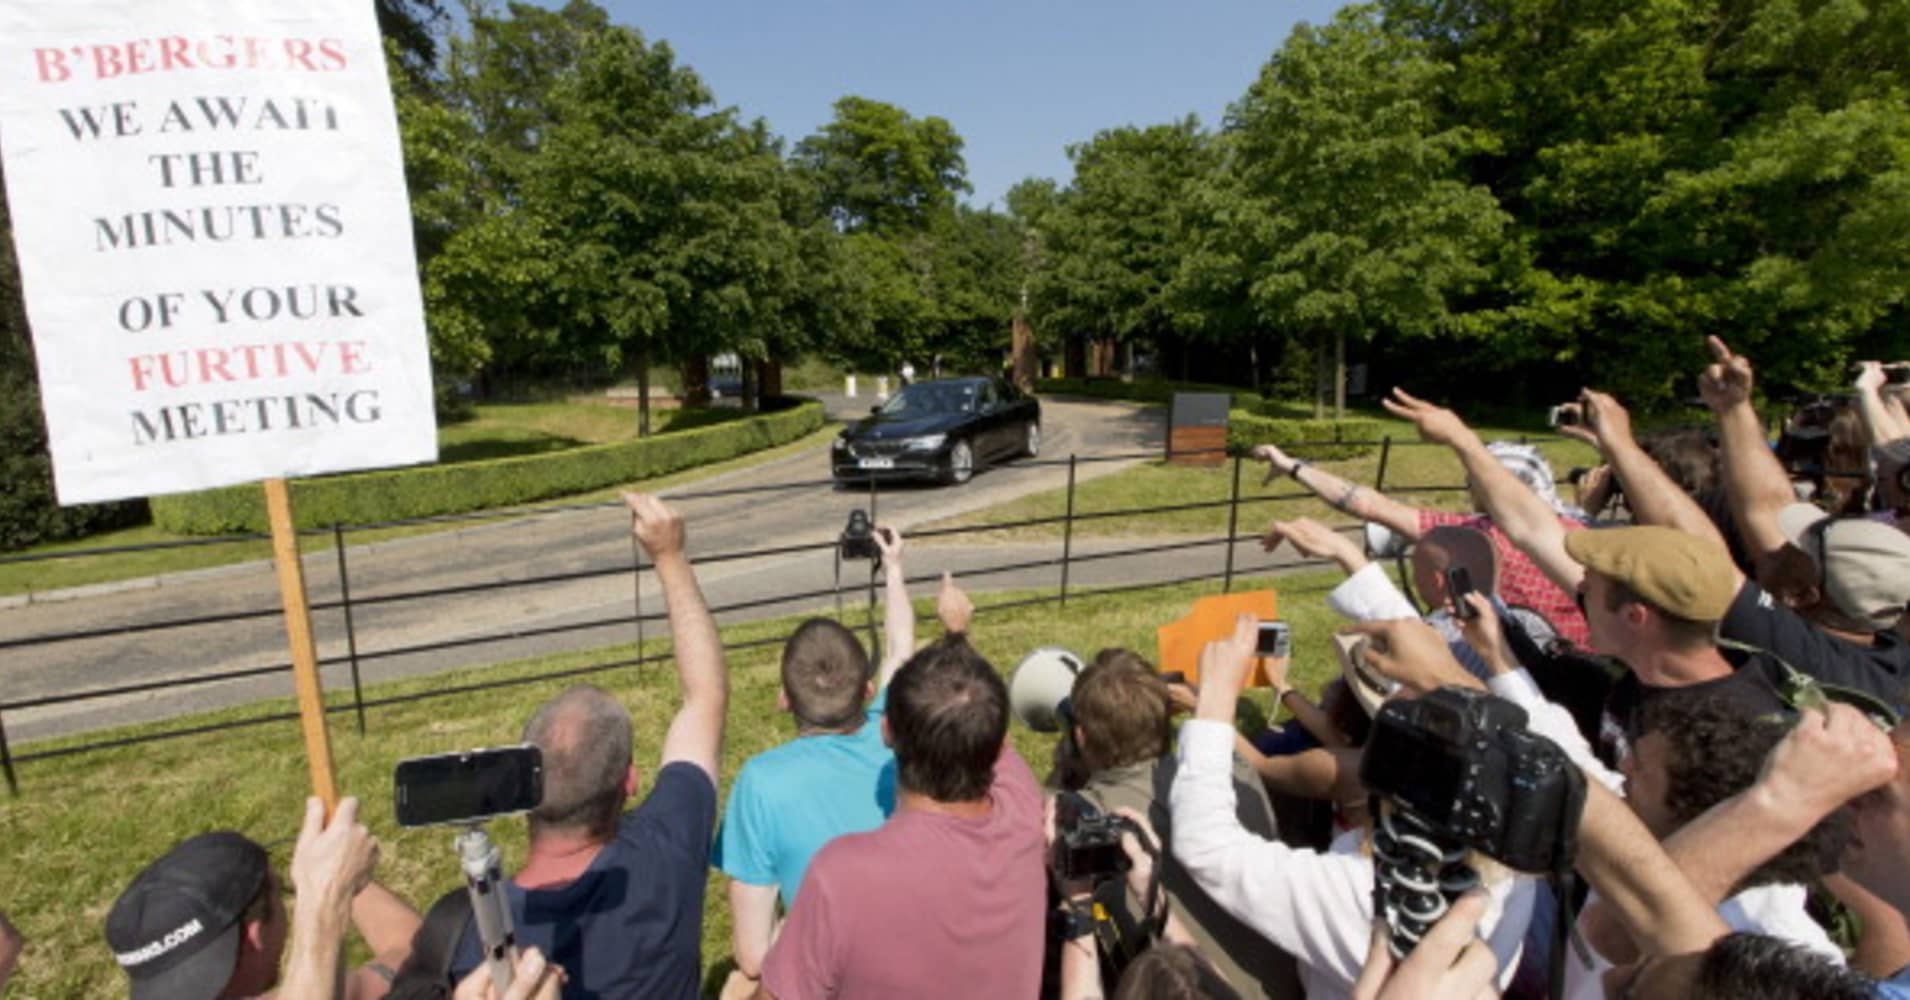 Bilderberg meeting elite focuses on politics